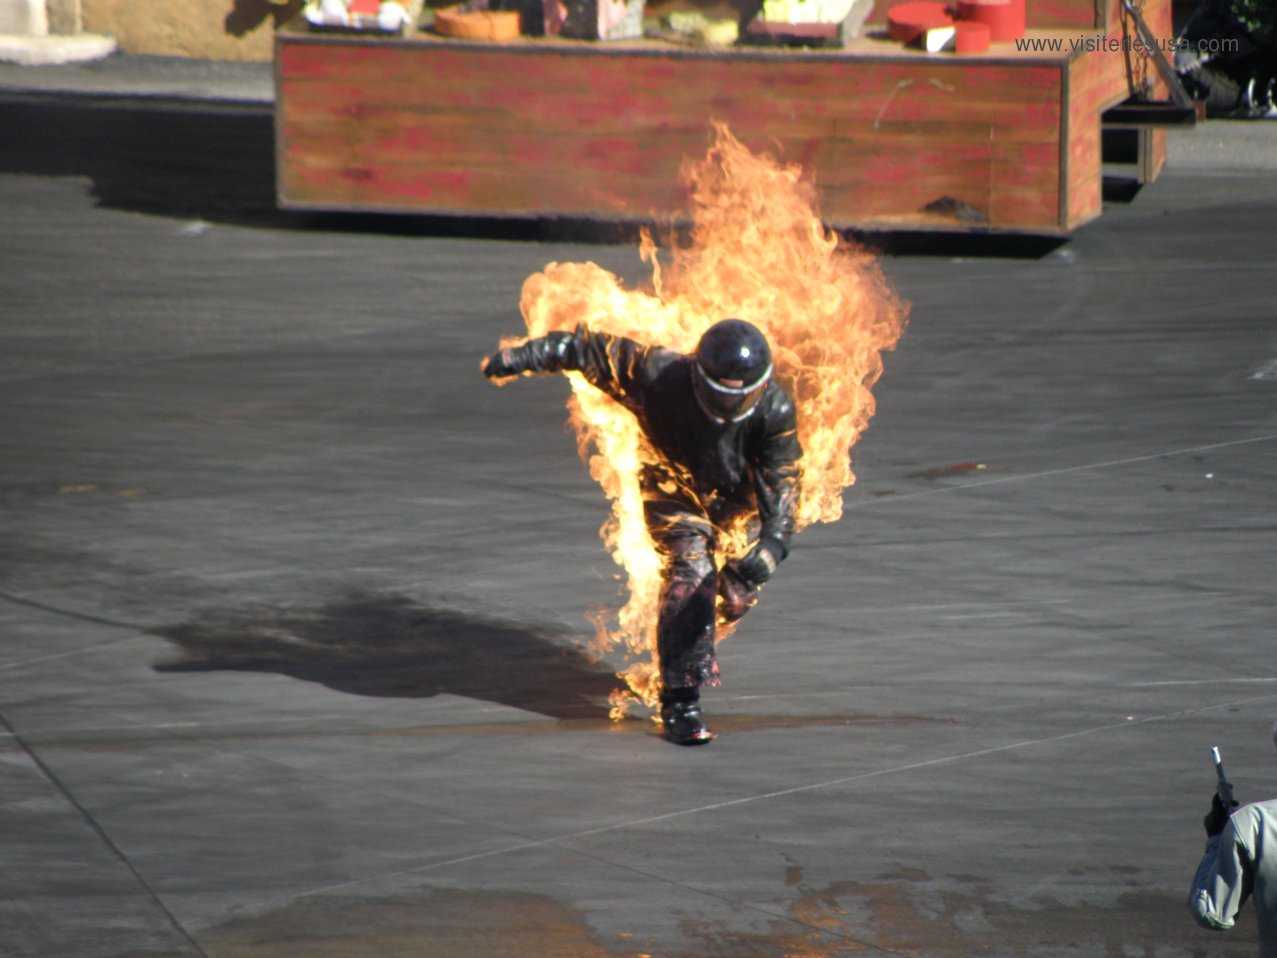 Lights, Motors, Action!® Extreme Stunt Show®